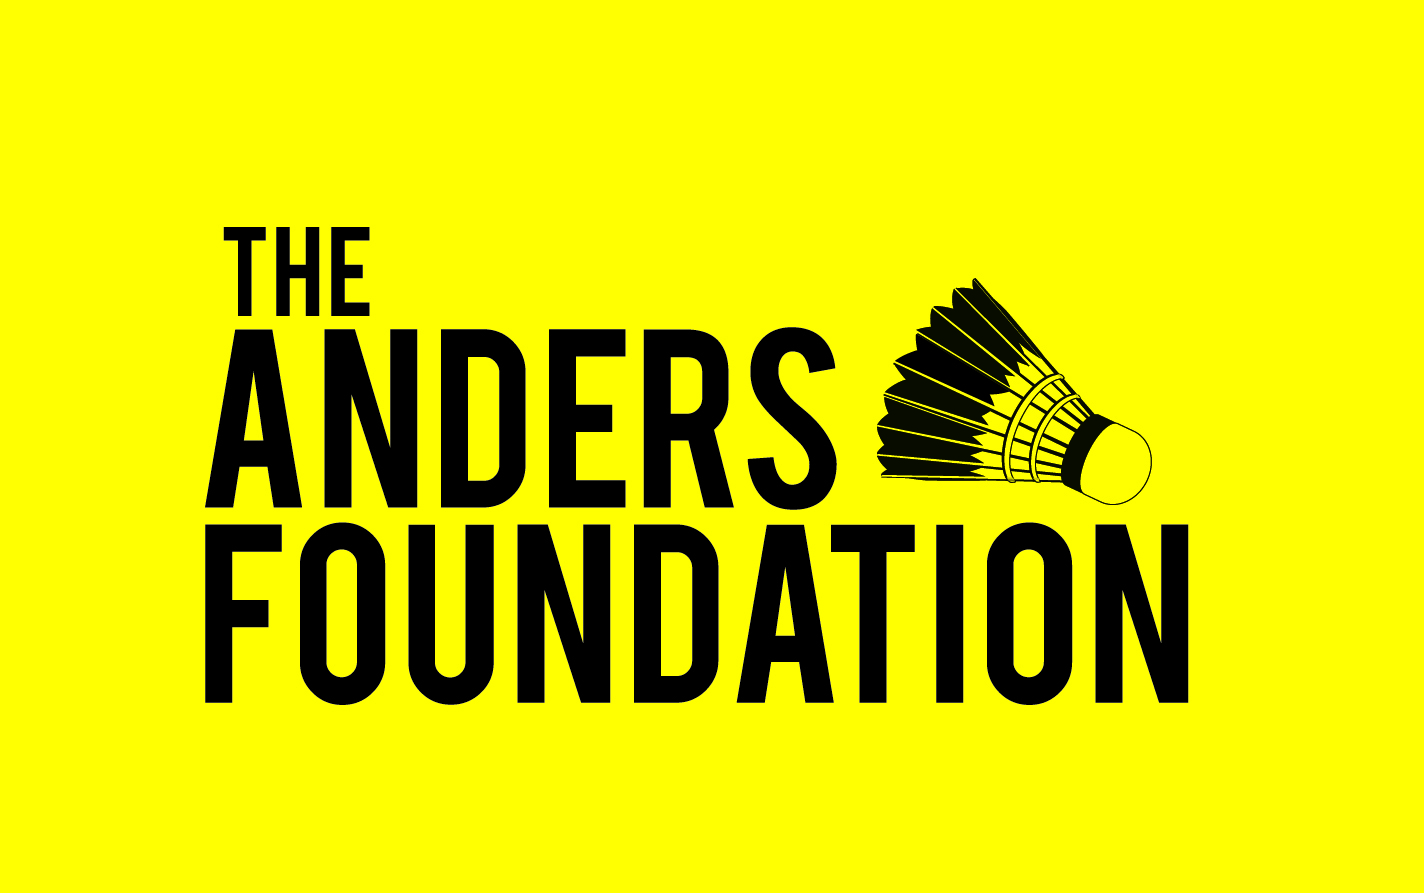 The Anders Foundation yellow